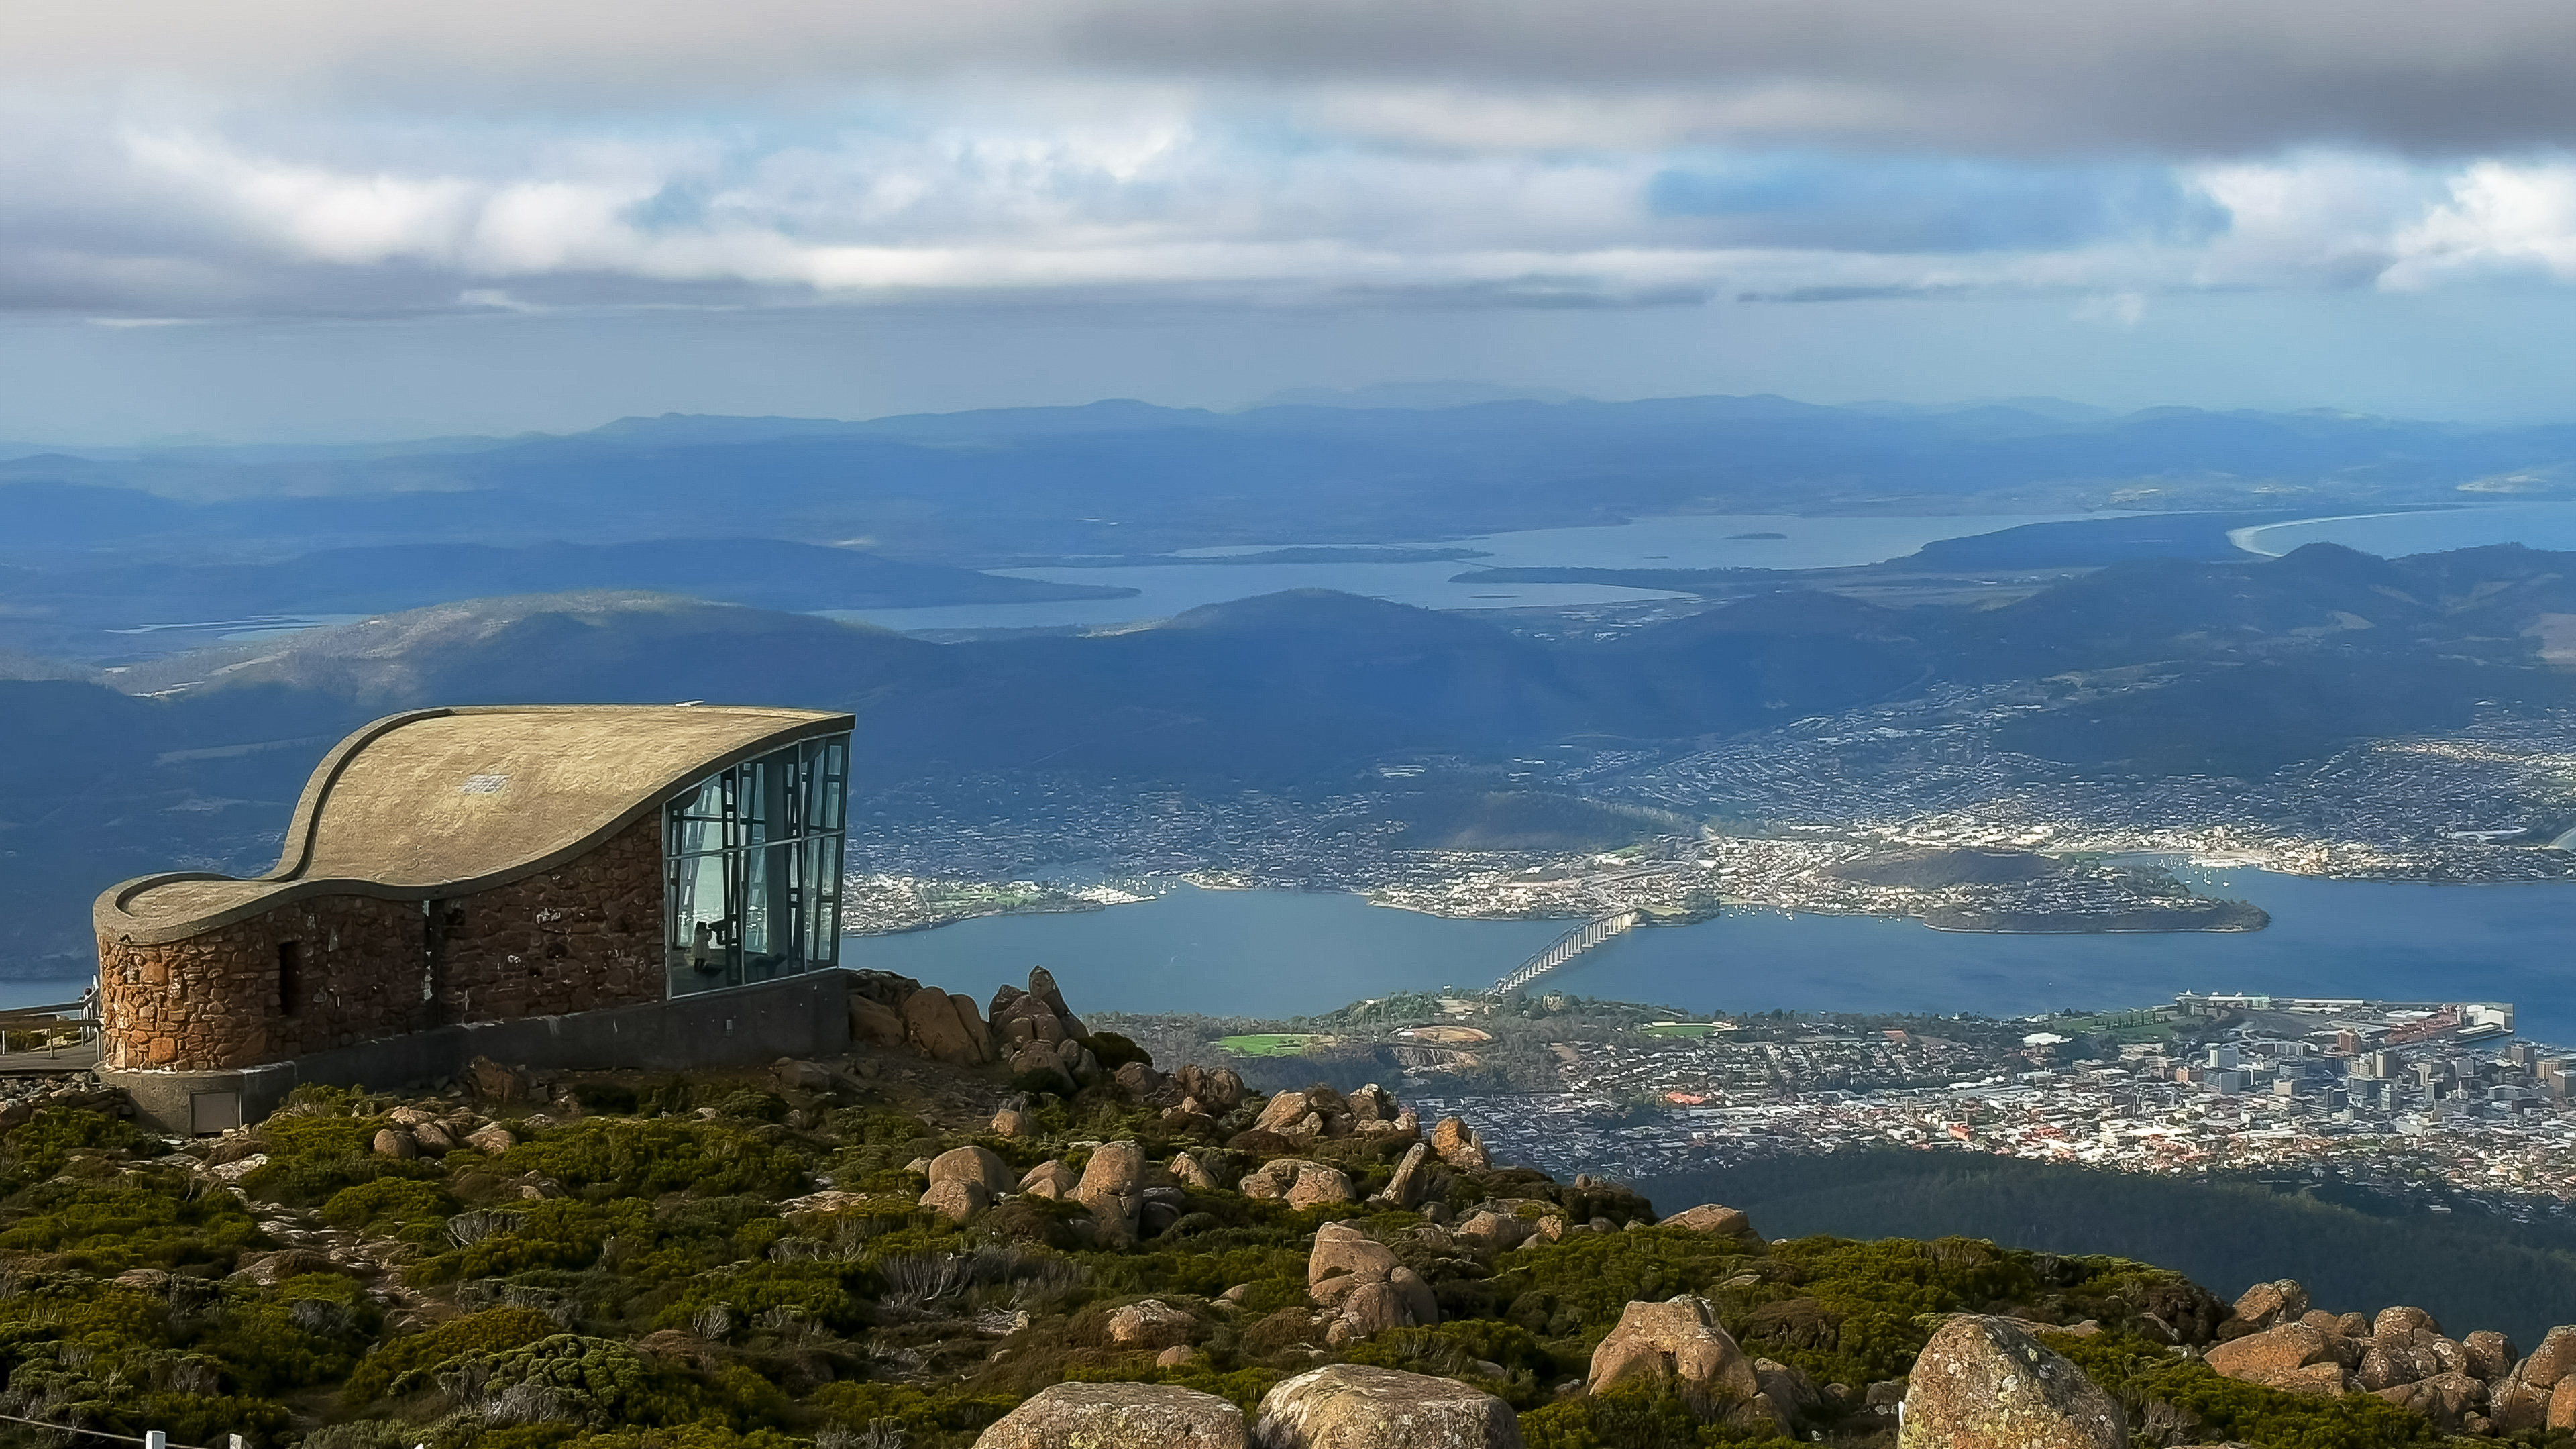 Hobart-Mt Wellington View